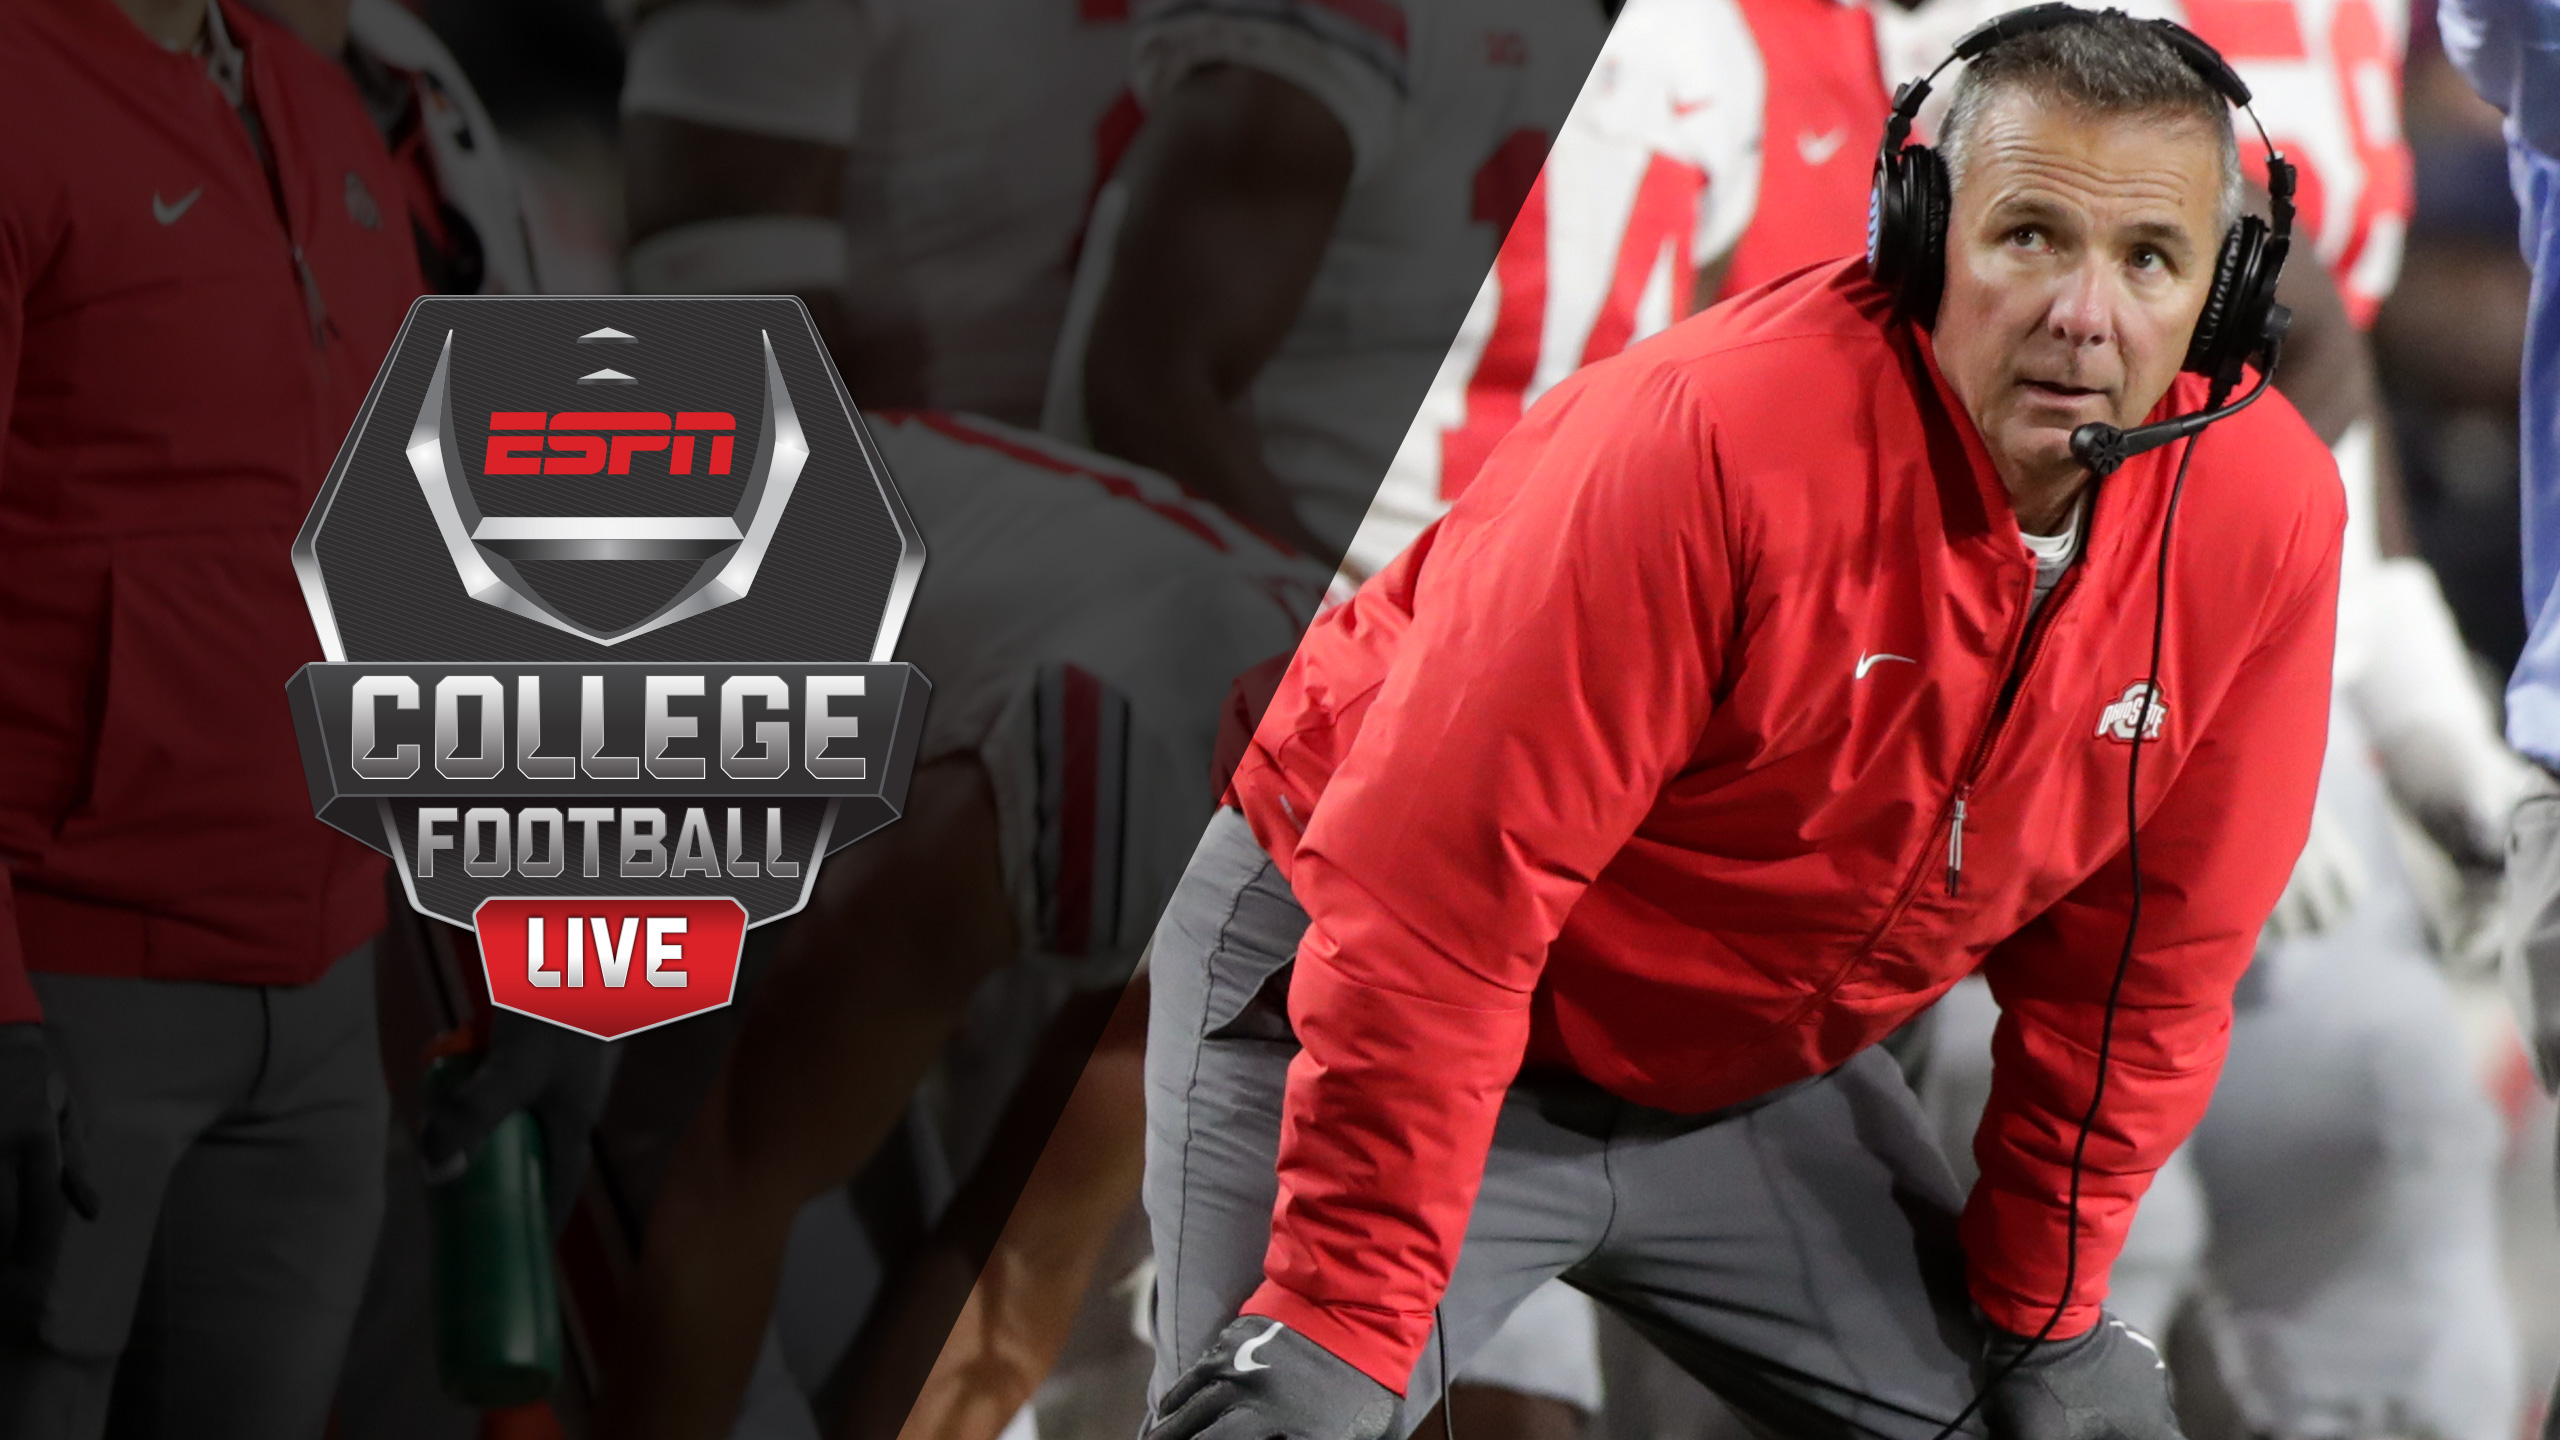 College Football Live Presented by ZipRecruiter